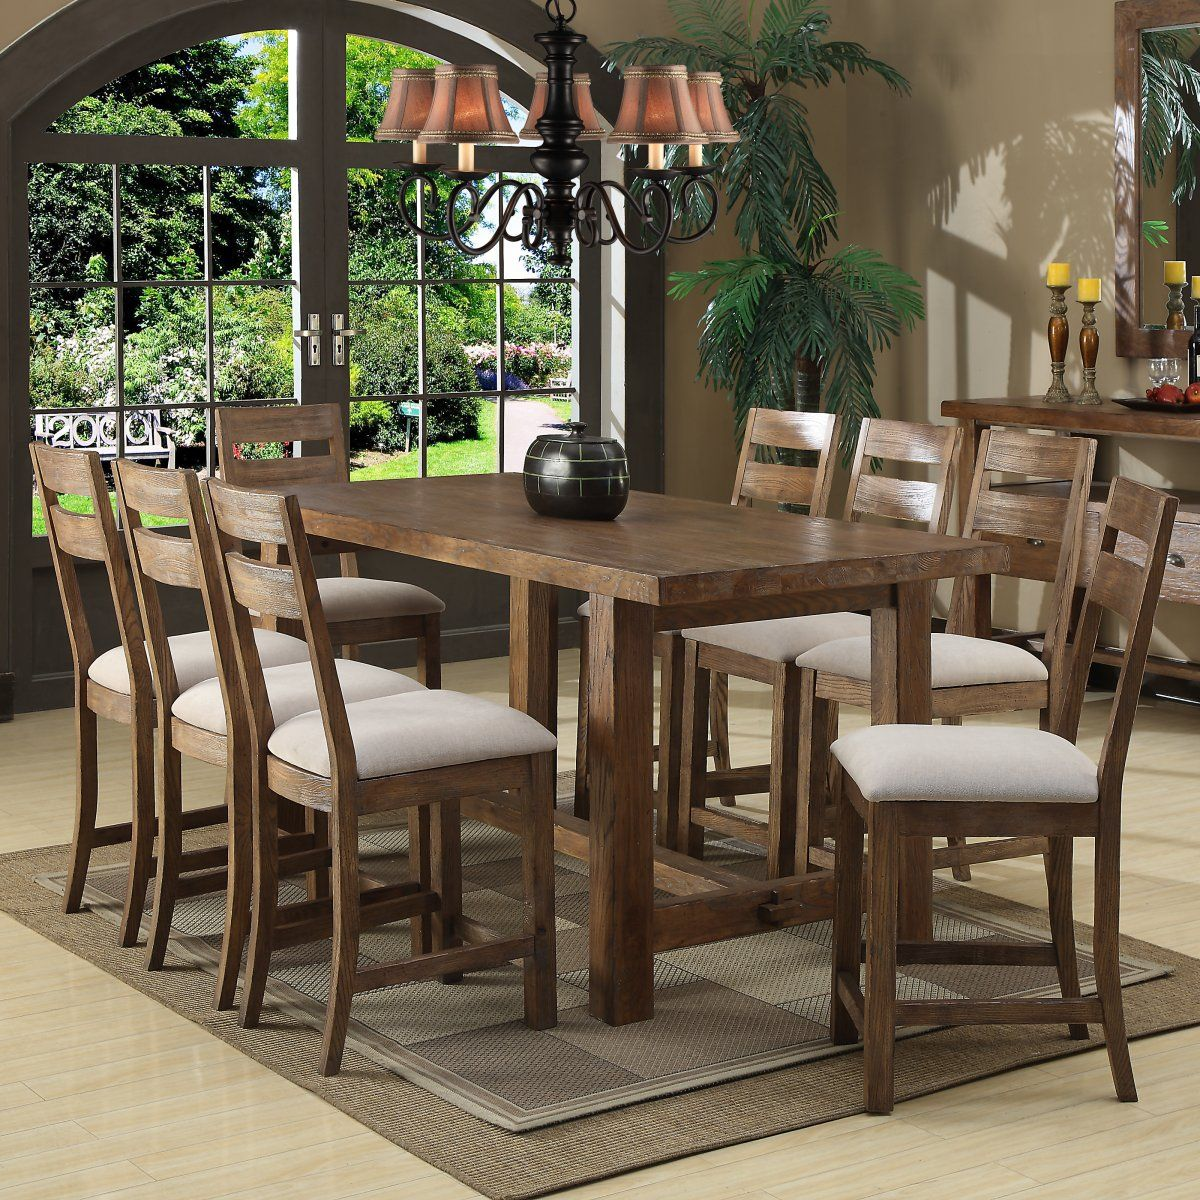 Emerald Home Bellevue 9 Pc Counter Height Set Dining Table Trestle Dining Tables Dining